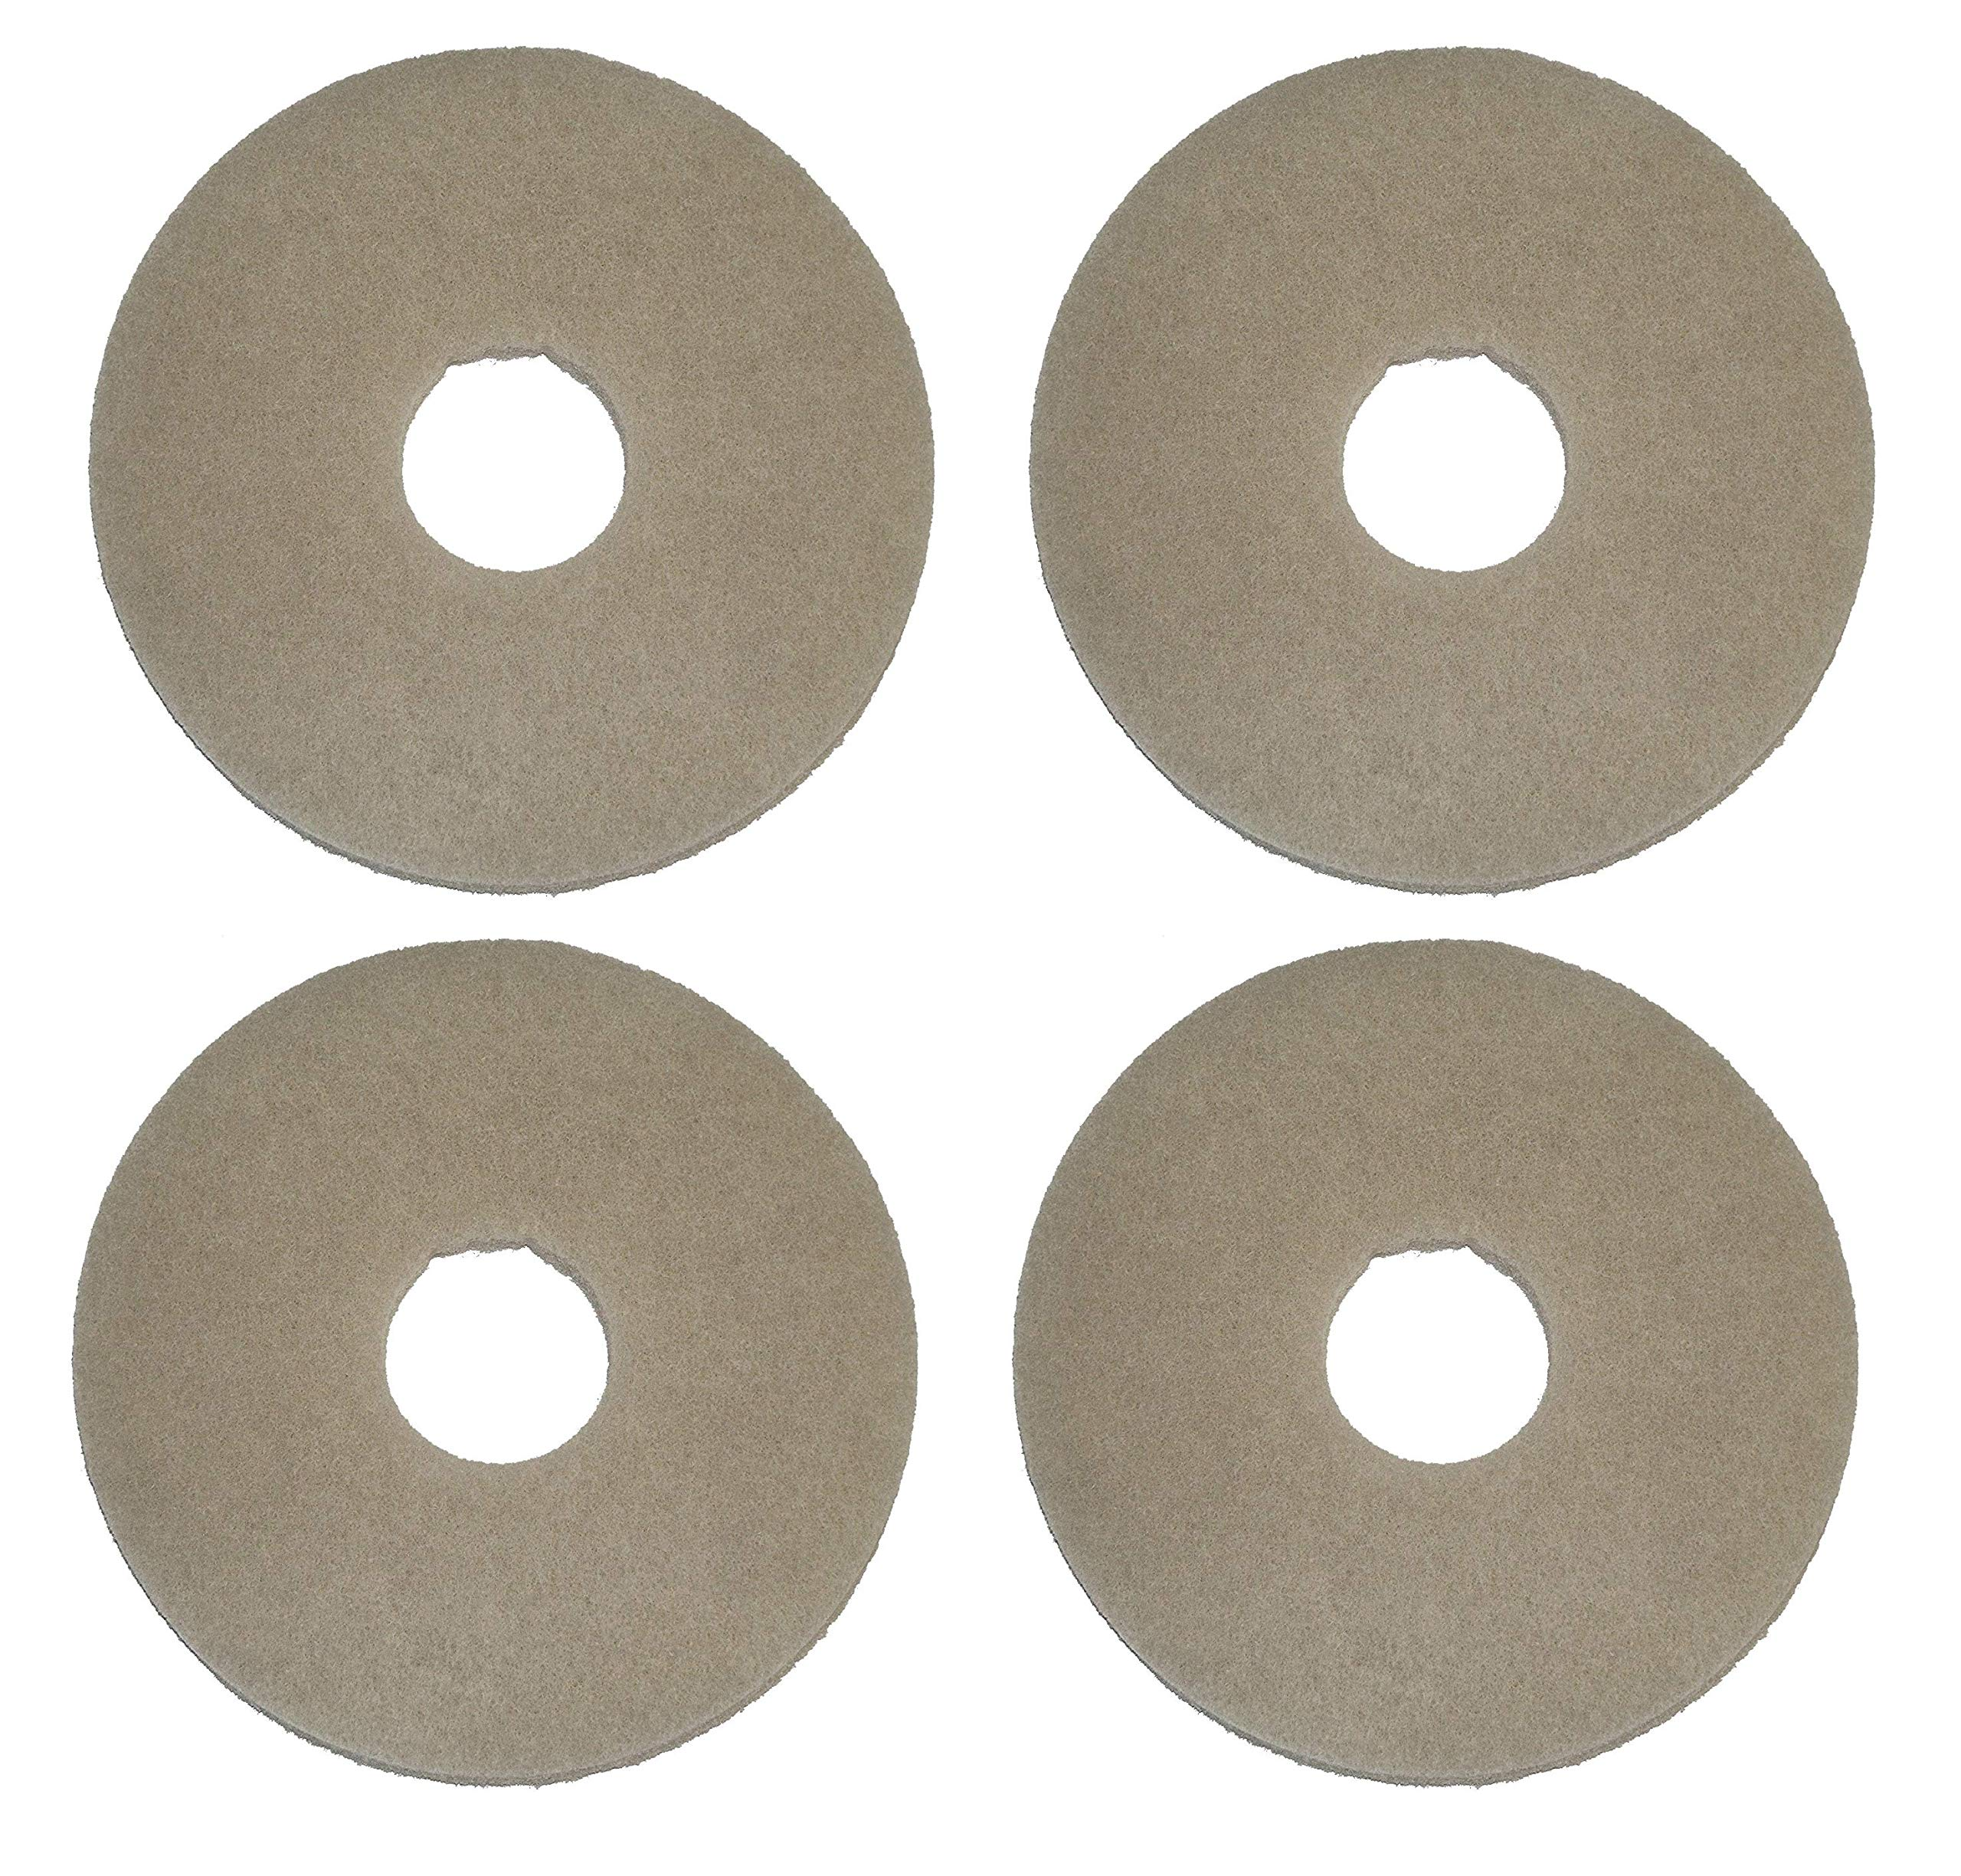 Oreck Commercial 437058 Stone Care Orbiter Pad, 12'' Diameter, Beige Marble, for ORB550MC Orbiter Floor Machine (Вundlе оf Fоur)